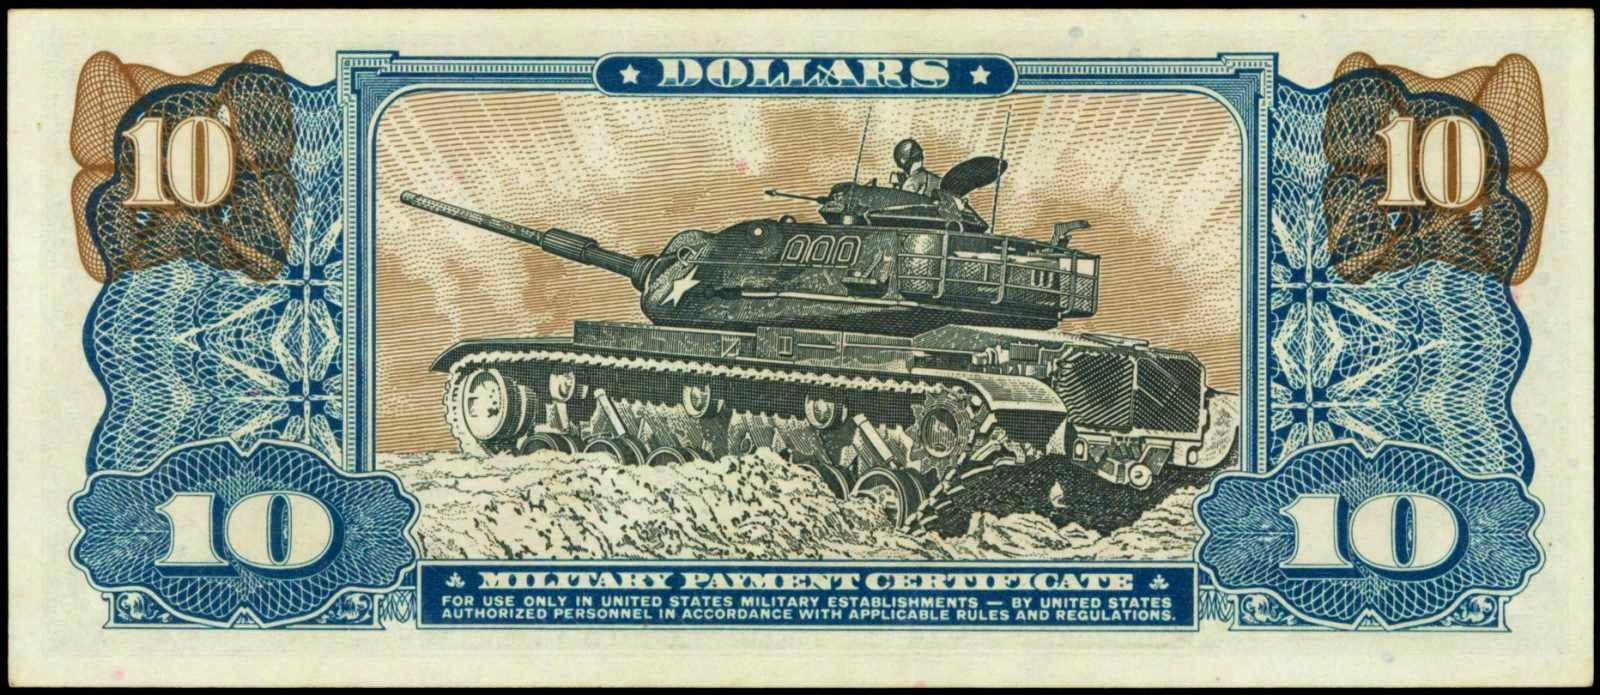 10 Dollars Military Payment Certificate M48A4 Patton Tank